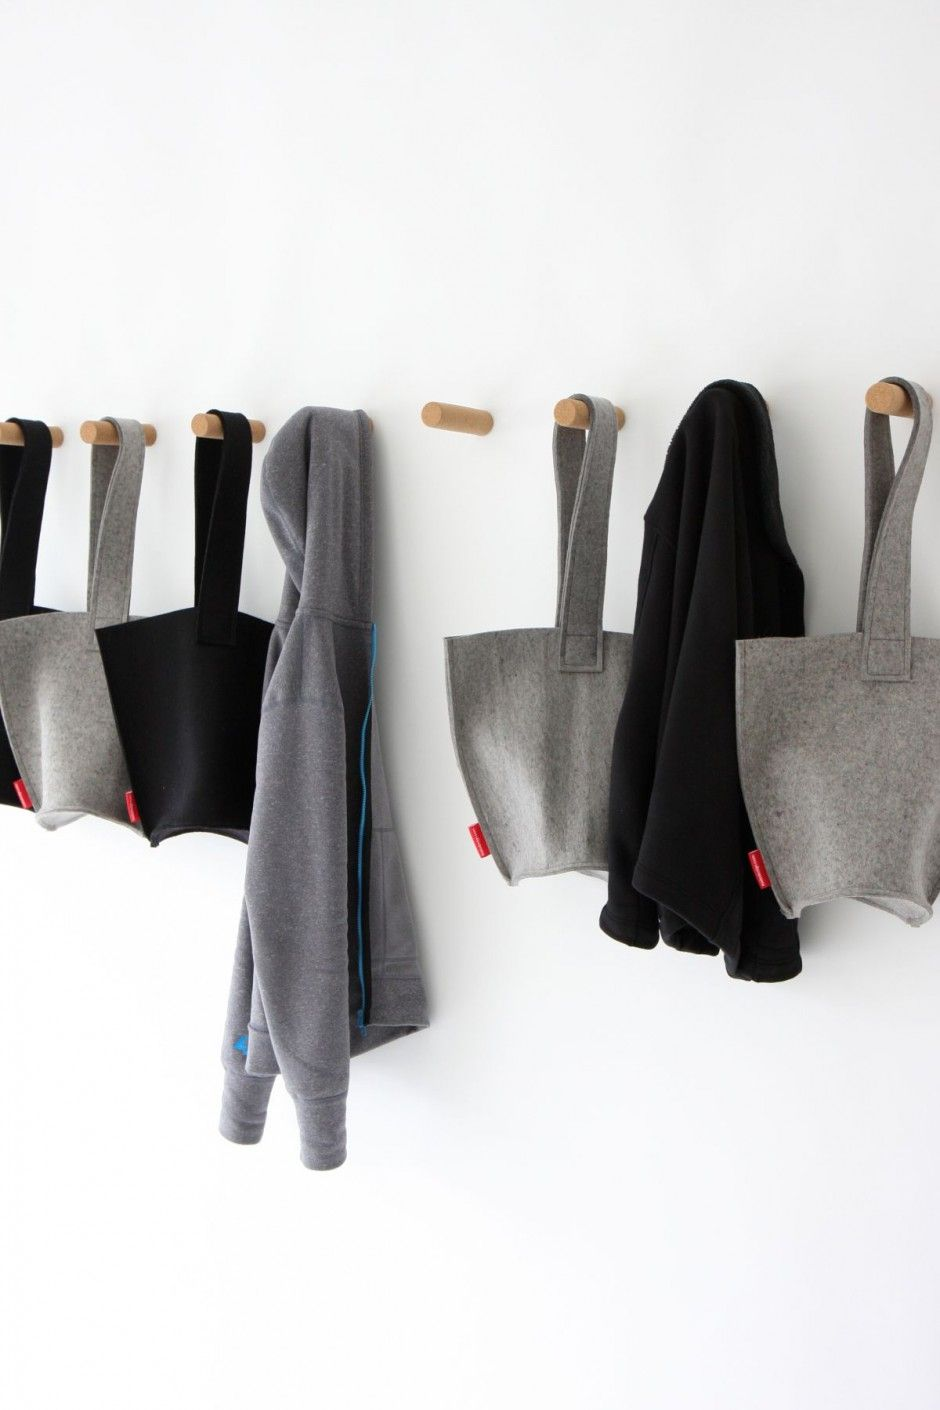 11 Creative Coat Hooks To Keep Your Clothes And Bags Off The Floor // These  Simple Peg Hangers Made From Cork Attach To The Wall By Means Of A Super  Strong ...